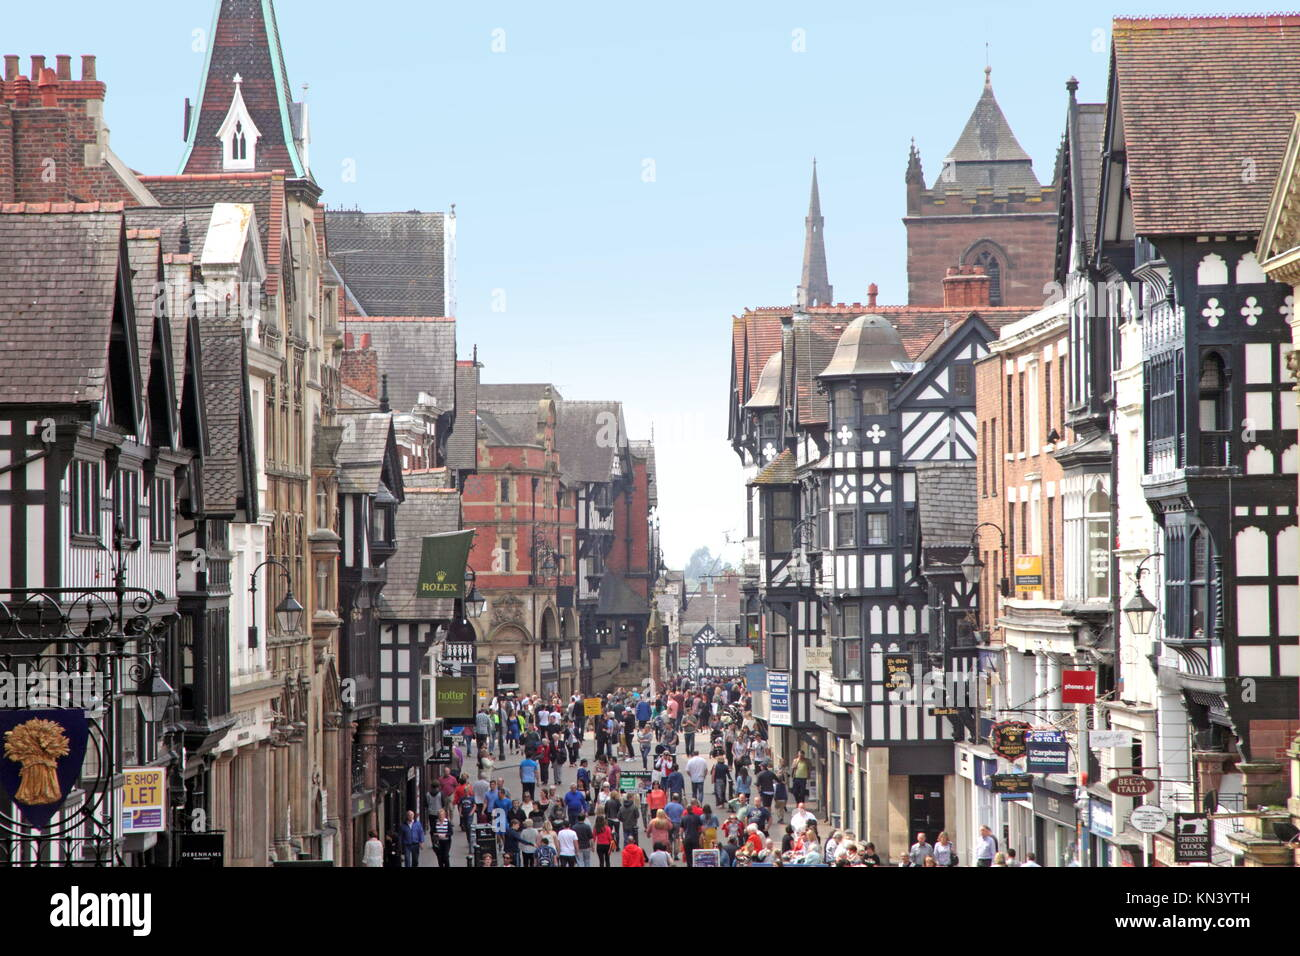 chester uk april 21 chester is arguably the richest city in britain